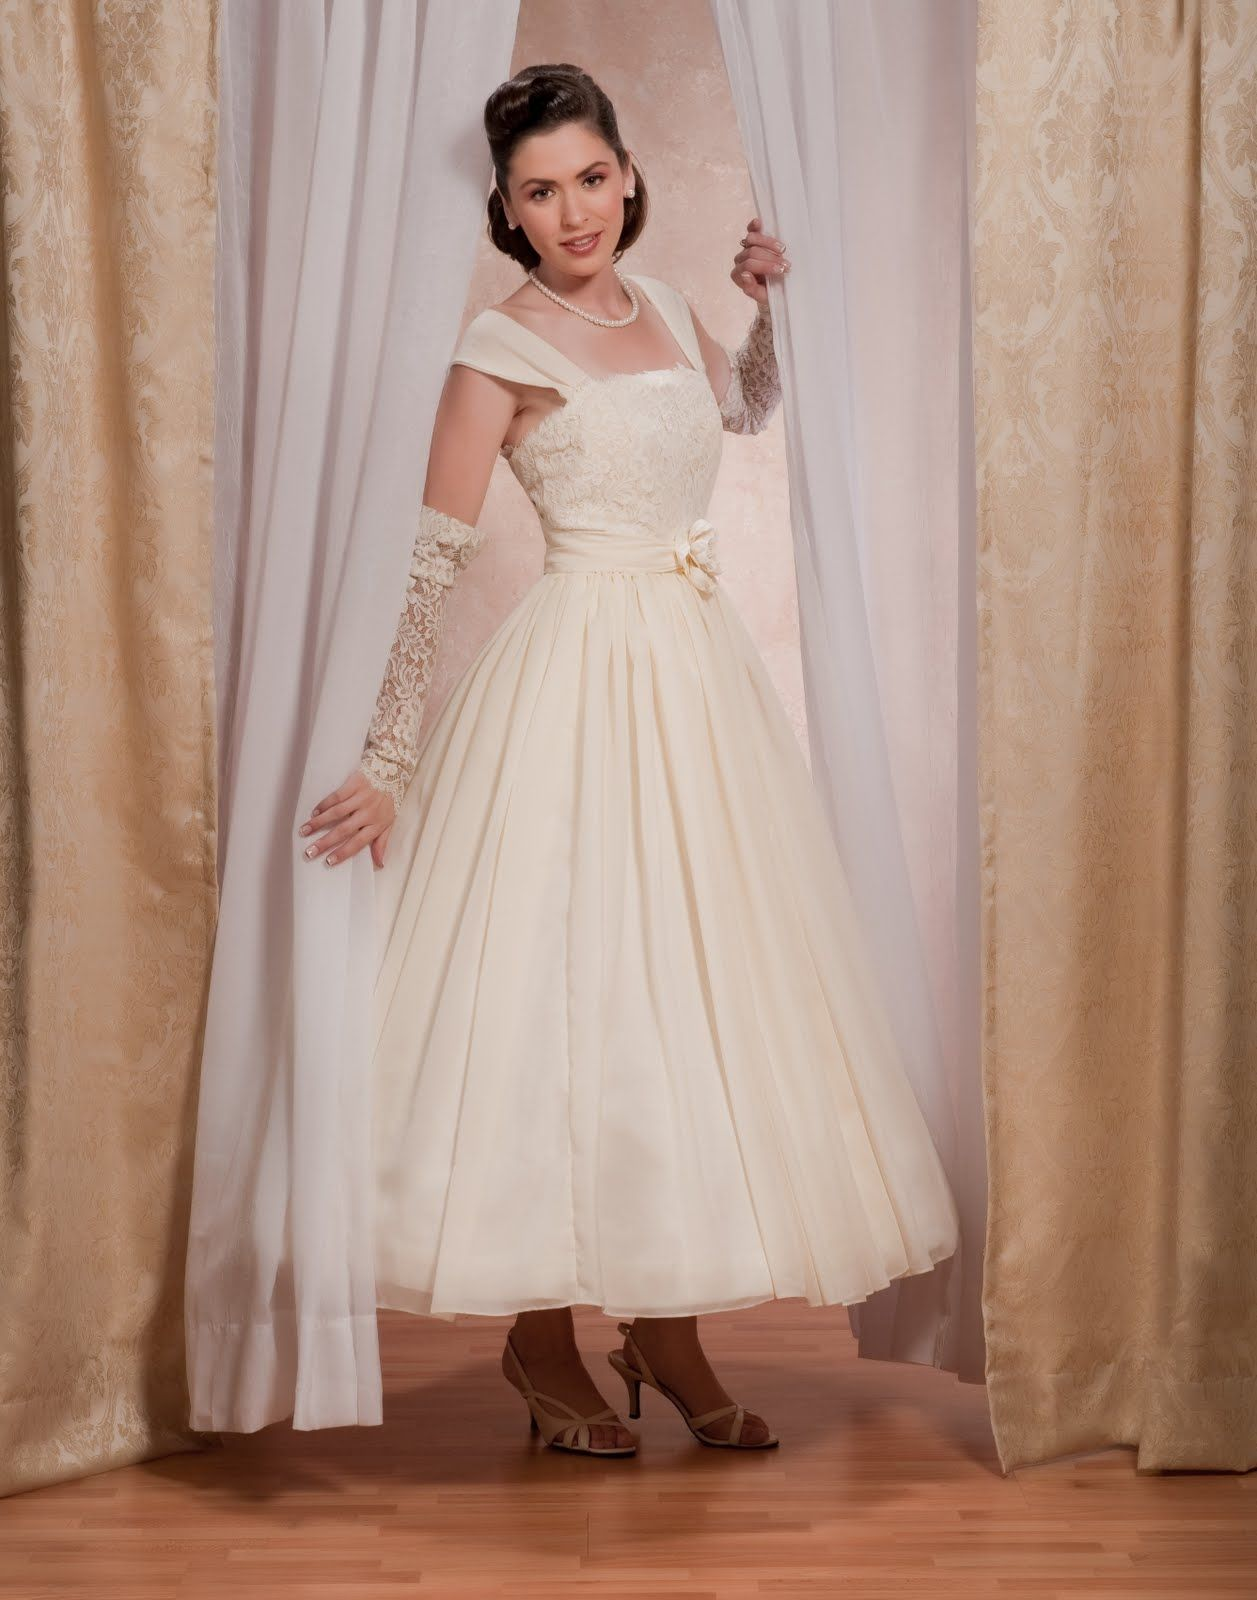 1950s wedding dress - Lace gauntlets instead of gloves - can't put ...